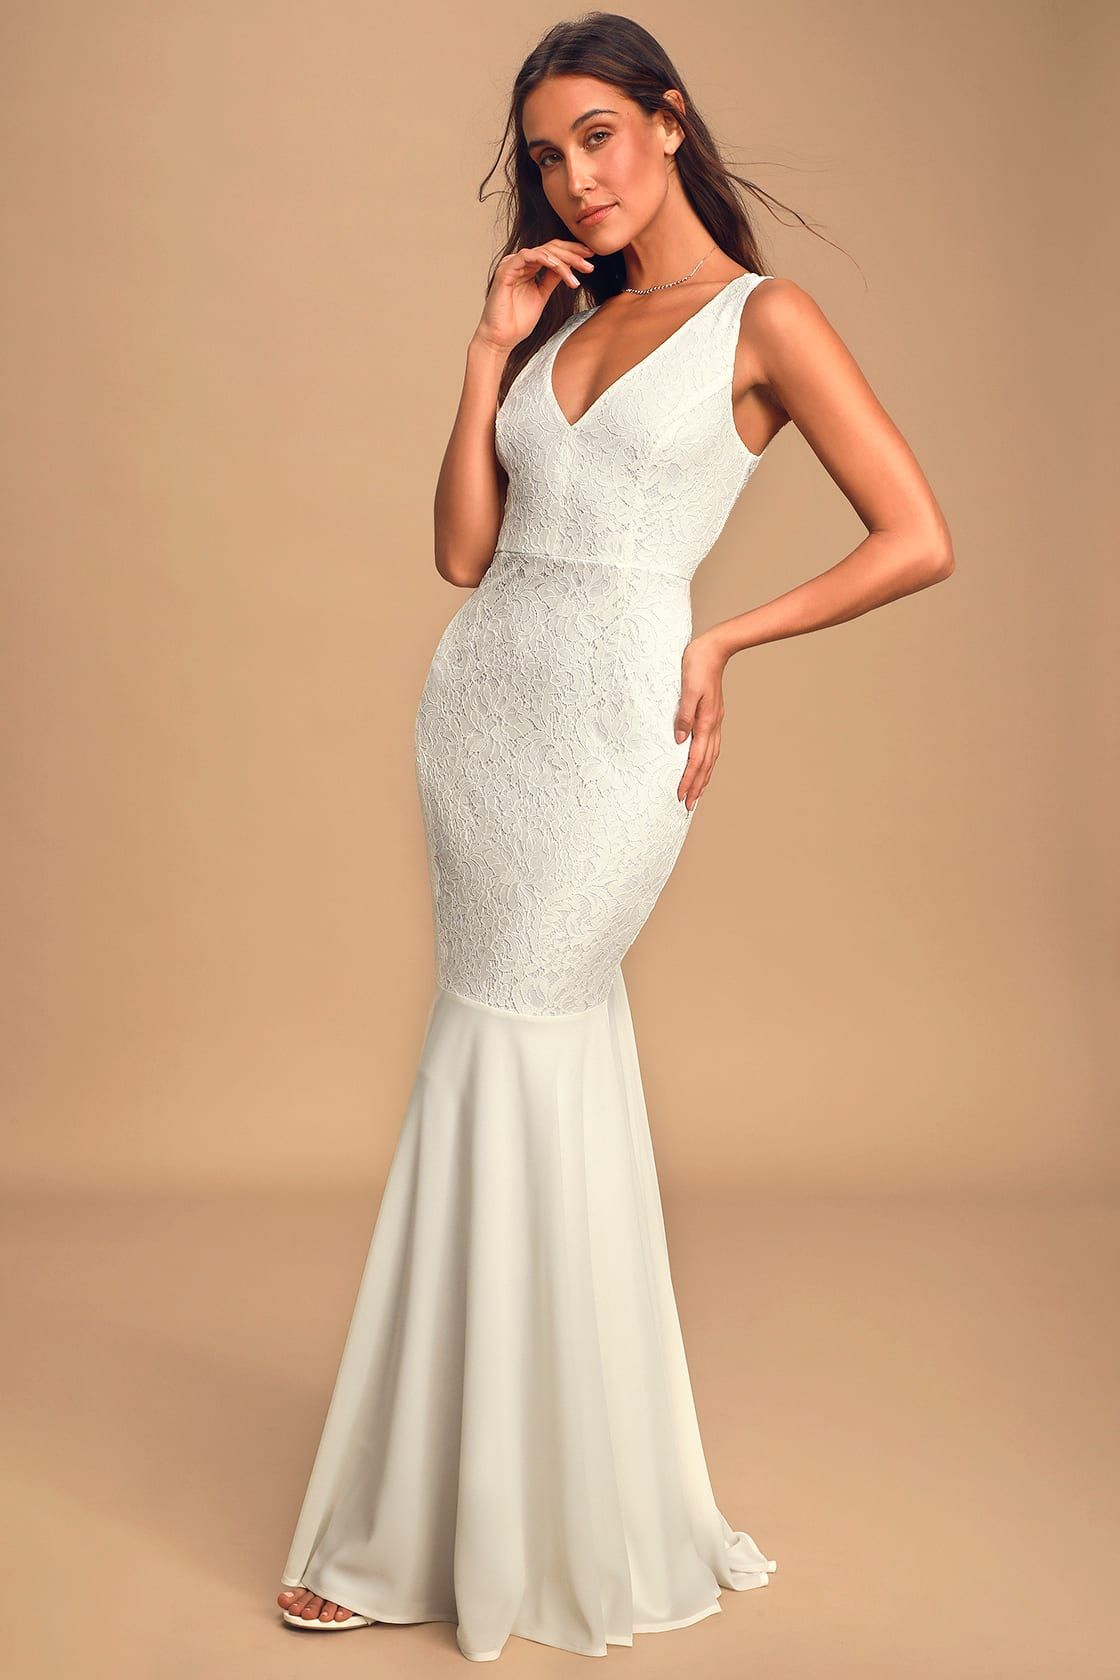 Take My Breath Away White Lace Backless Mermaid Maxi Dress In 2020 Lace Maxi Dress Backless Lace Dress Long Sleeve Lace Maxi Dress